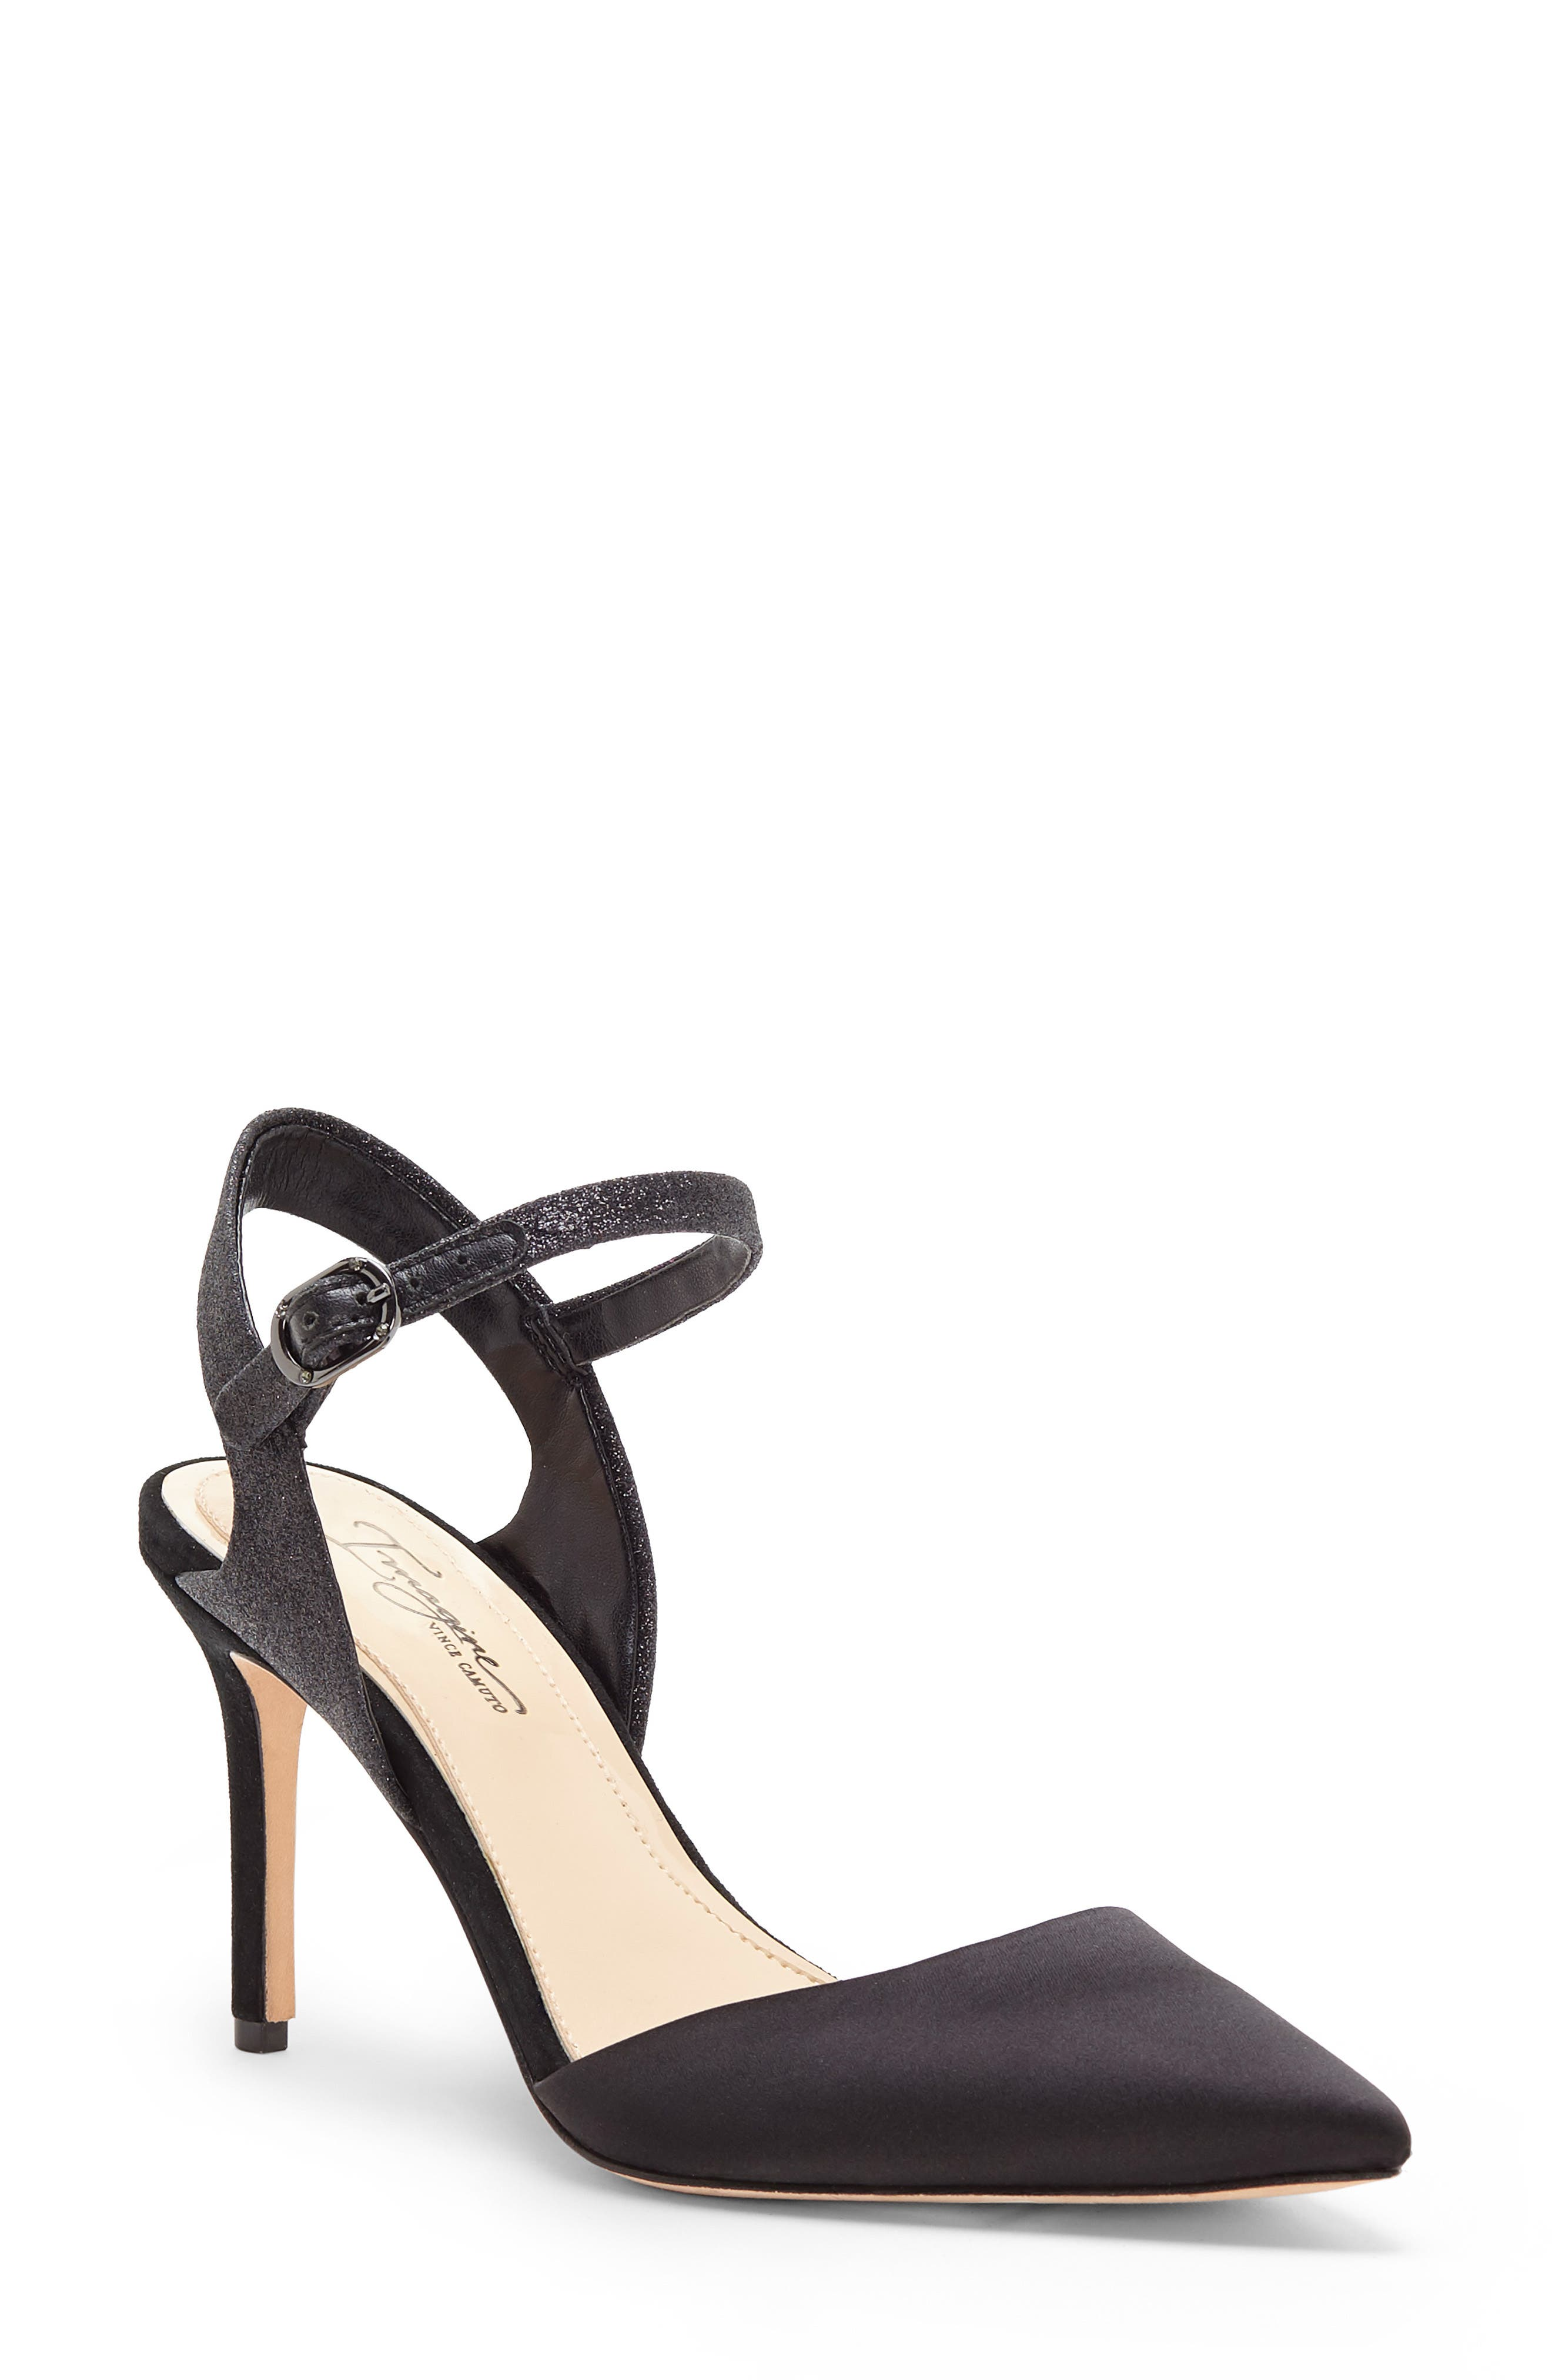 Imagine By Vince Camuto Glora Pointy Toe Pump